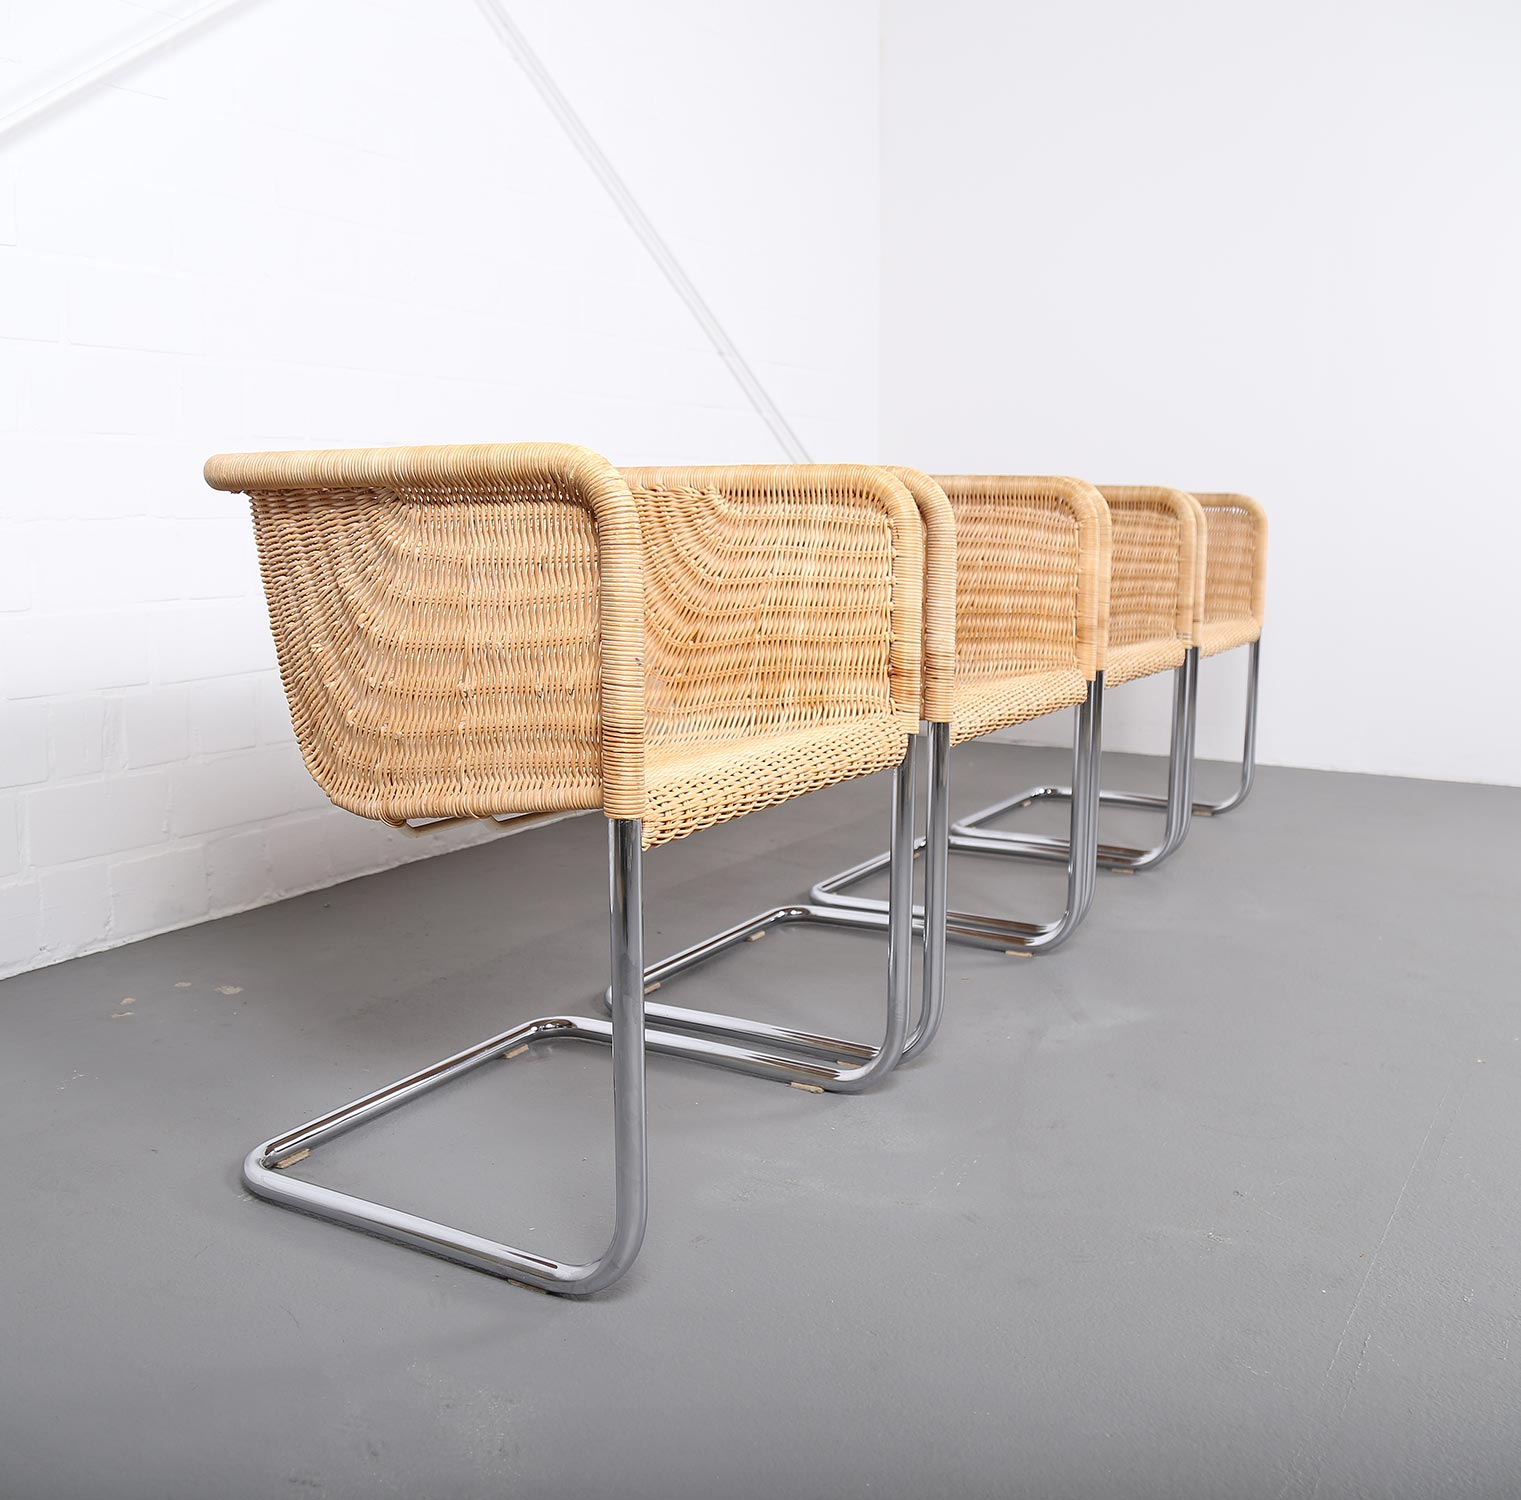 Bauhaus Chairs D43 Stahlrohr Freischwinger By Tecta Tubular Steel And Wicker Dekaden